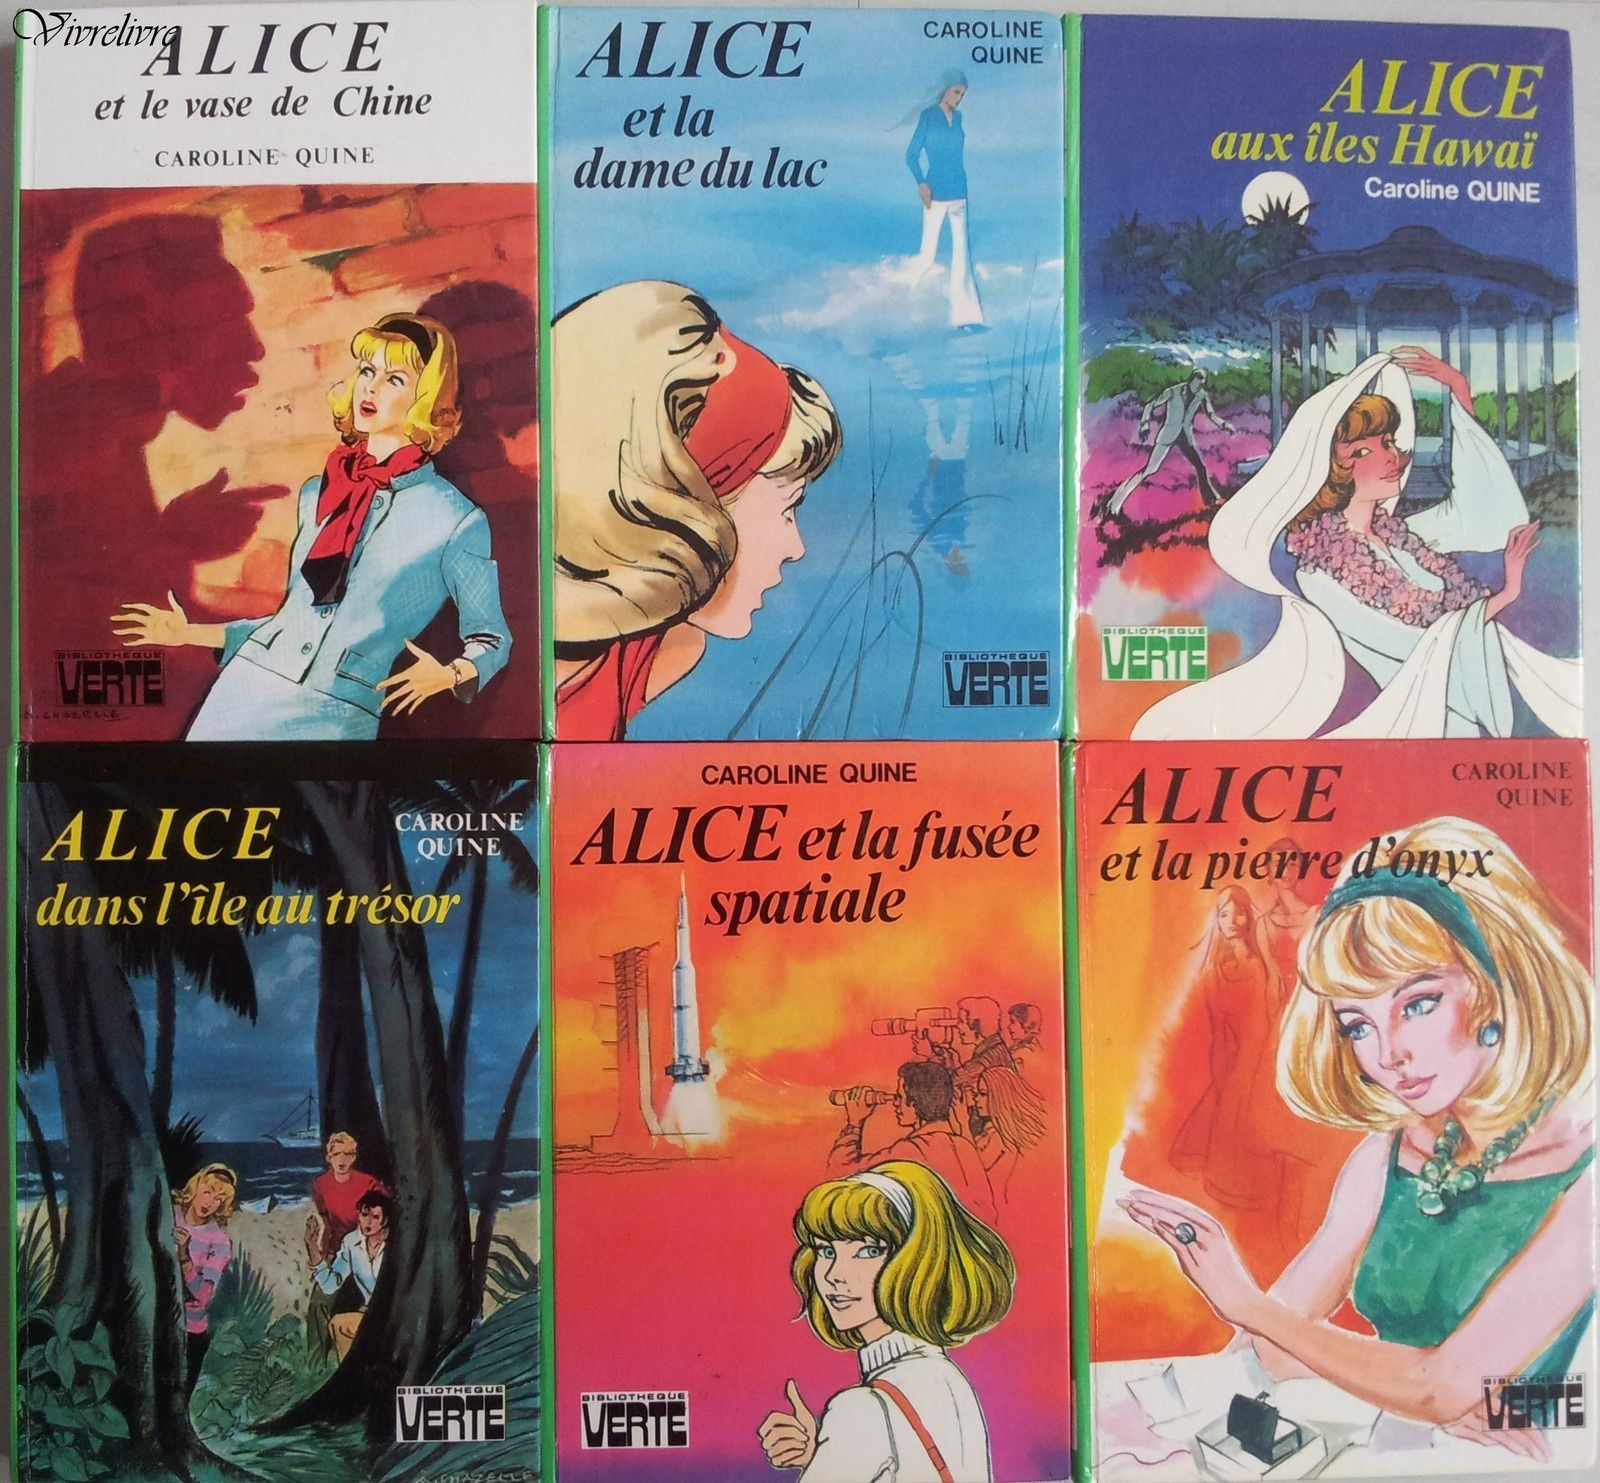 quand alice rencontre alice